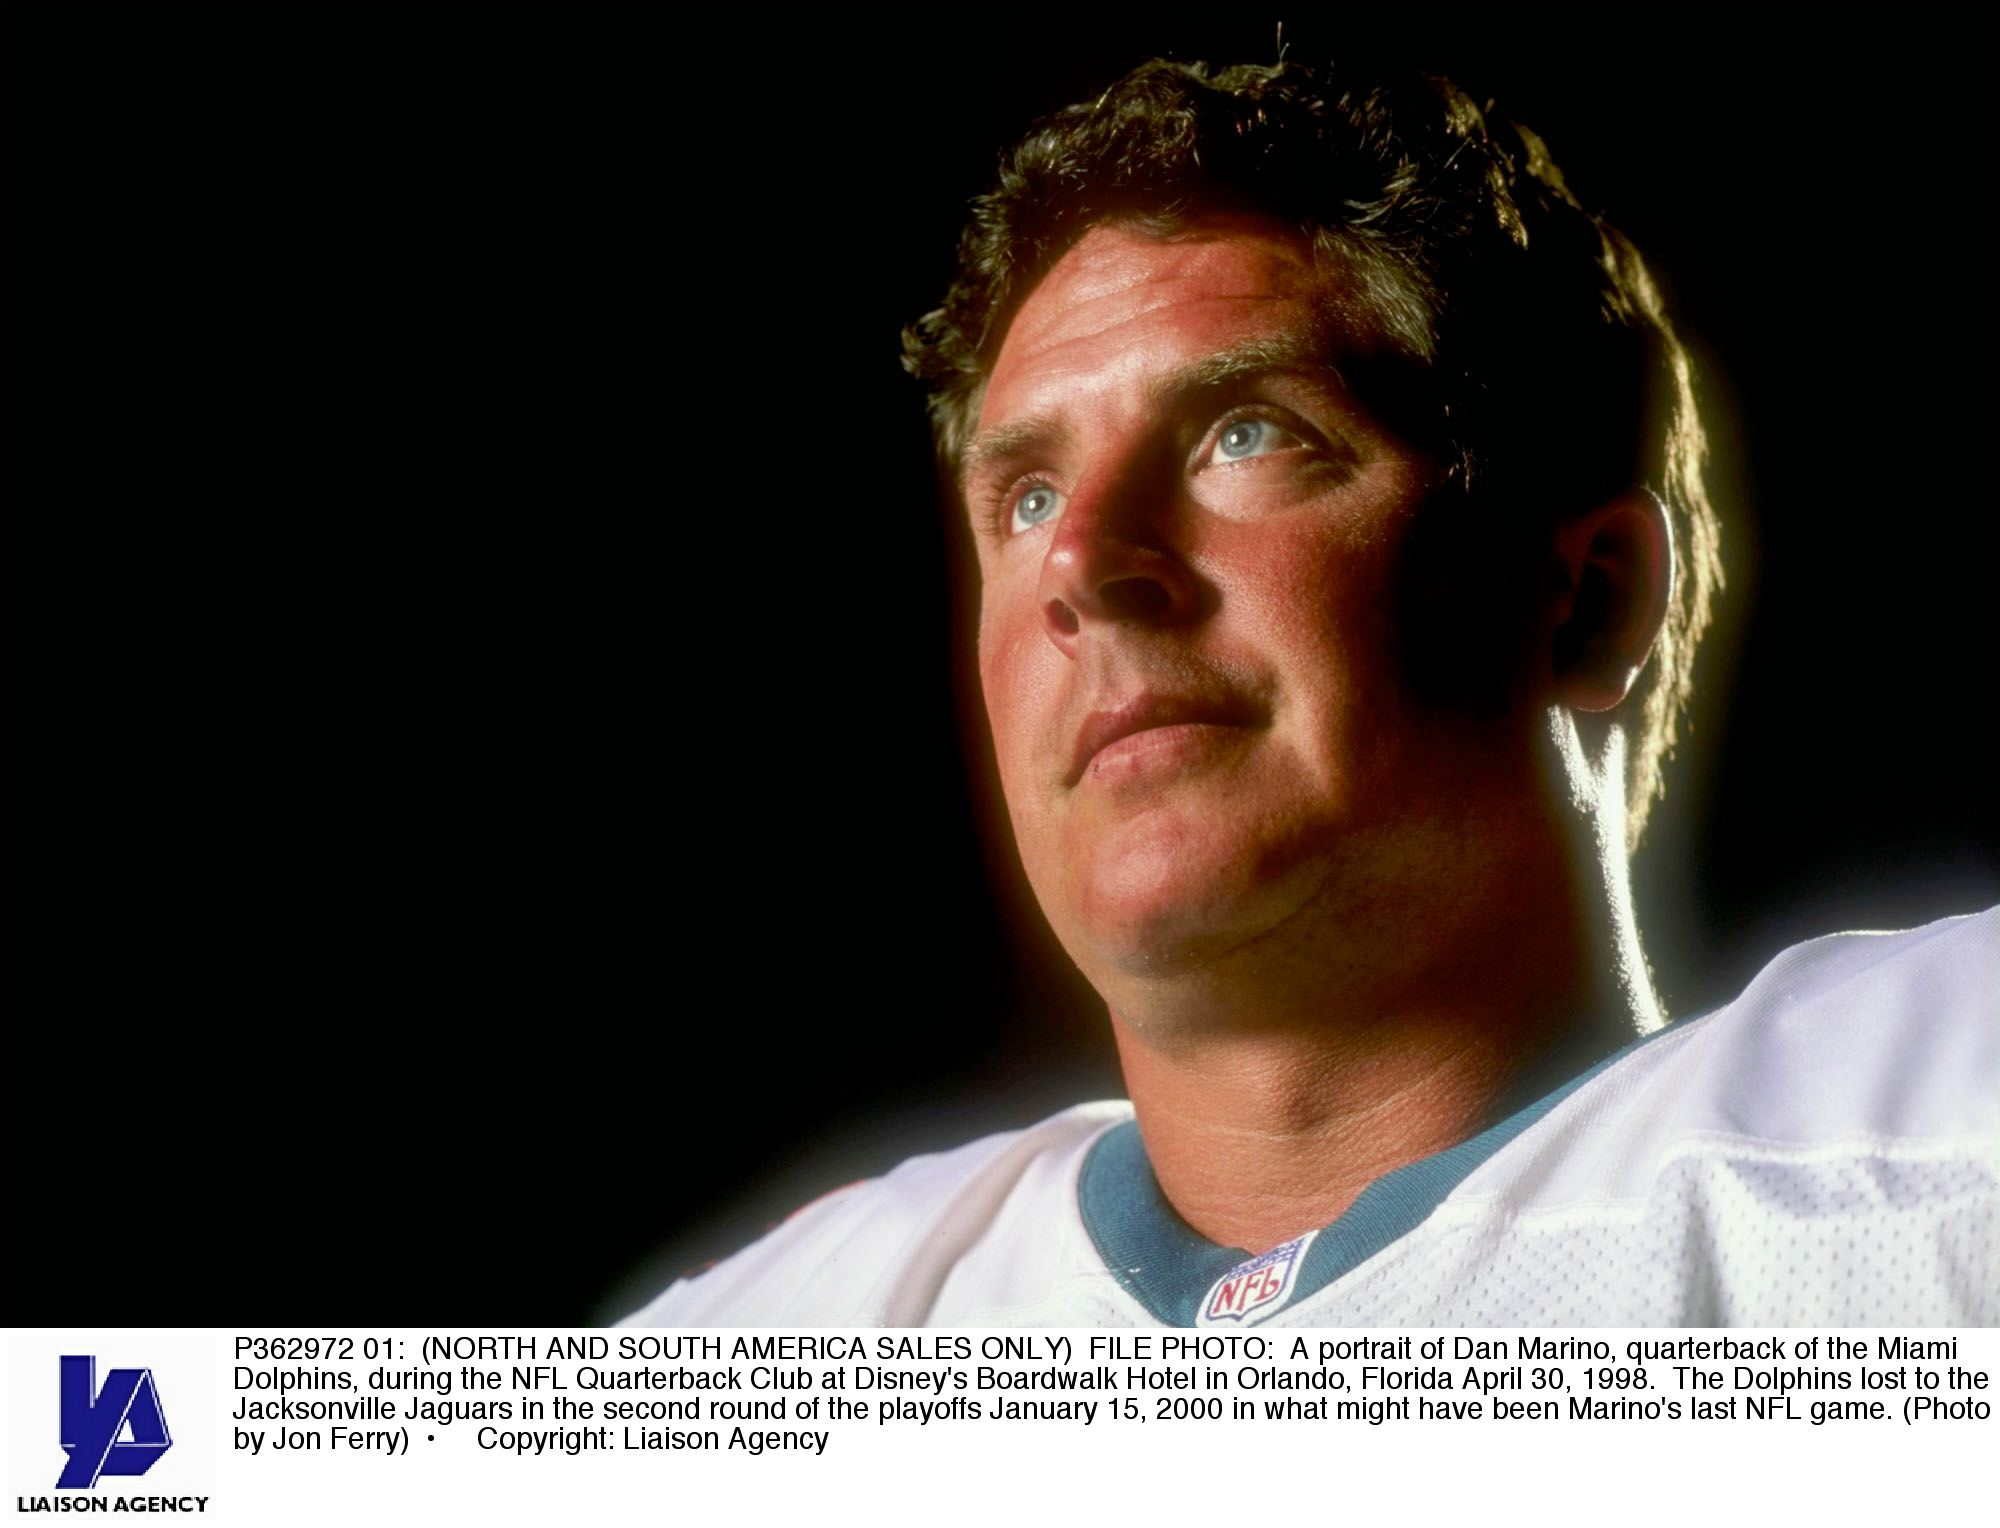 P362972 01: (NORTH AND SOUTH AMERICA SALES ONLY) FILE PHOTO: A portrait of Dan Marino, quarterback of the Miami Dolphins, during the NFL Quarterback Club at Disney's Boardwalk Hotel in Orlando, Florida April 30, 1998. The Dolphins lost to the Jacksonville